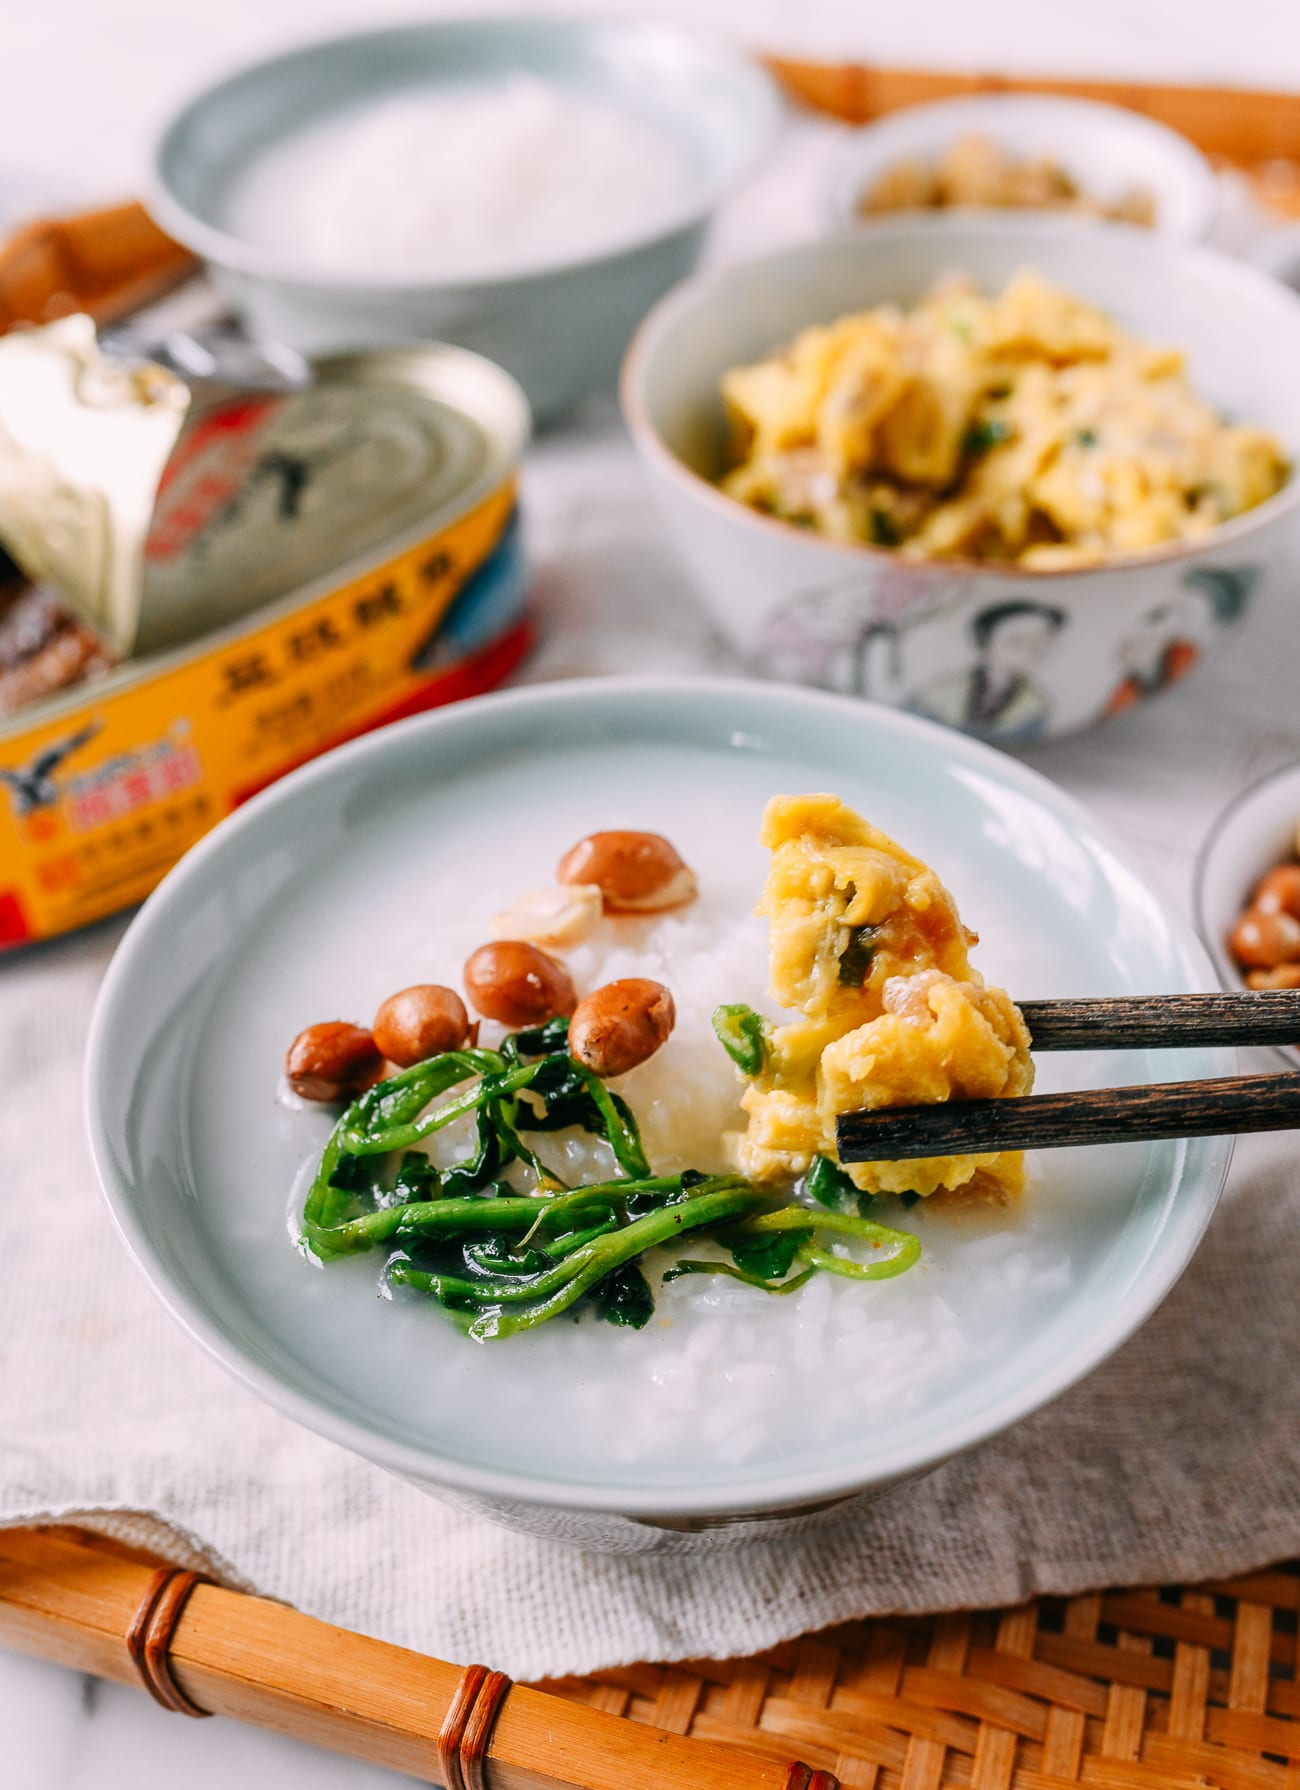 Pao fan with peanuts, eggs, and leftover greens